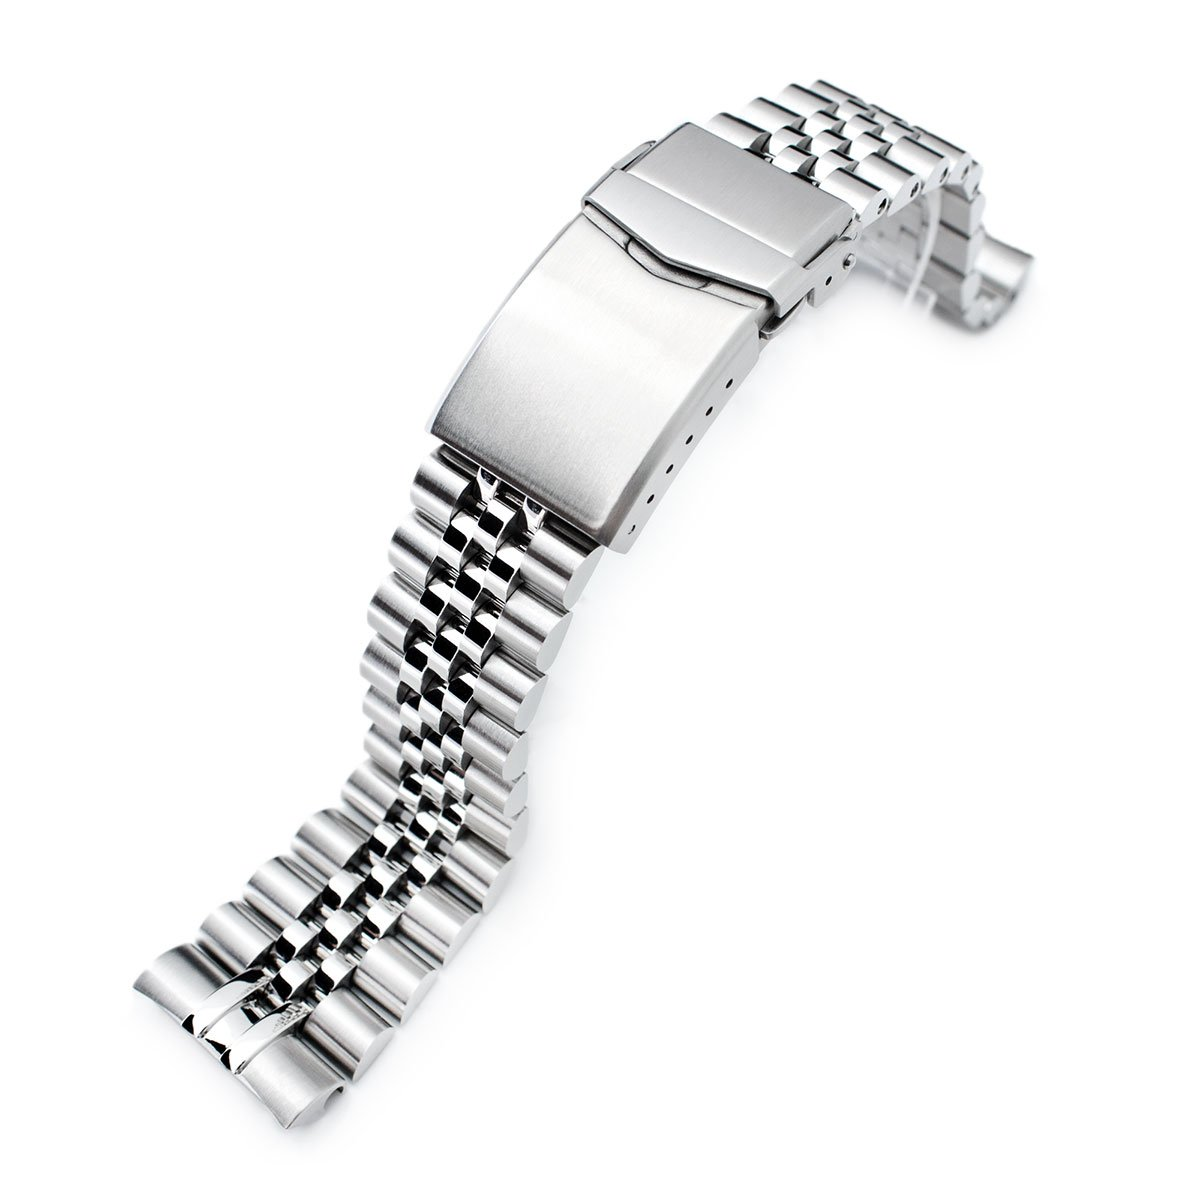 22mm Super Jubilee 316L SS Watch Bracelet for Seiko New Turtles SRP777, V-Clasp Brushed